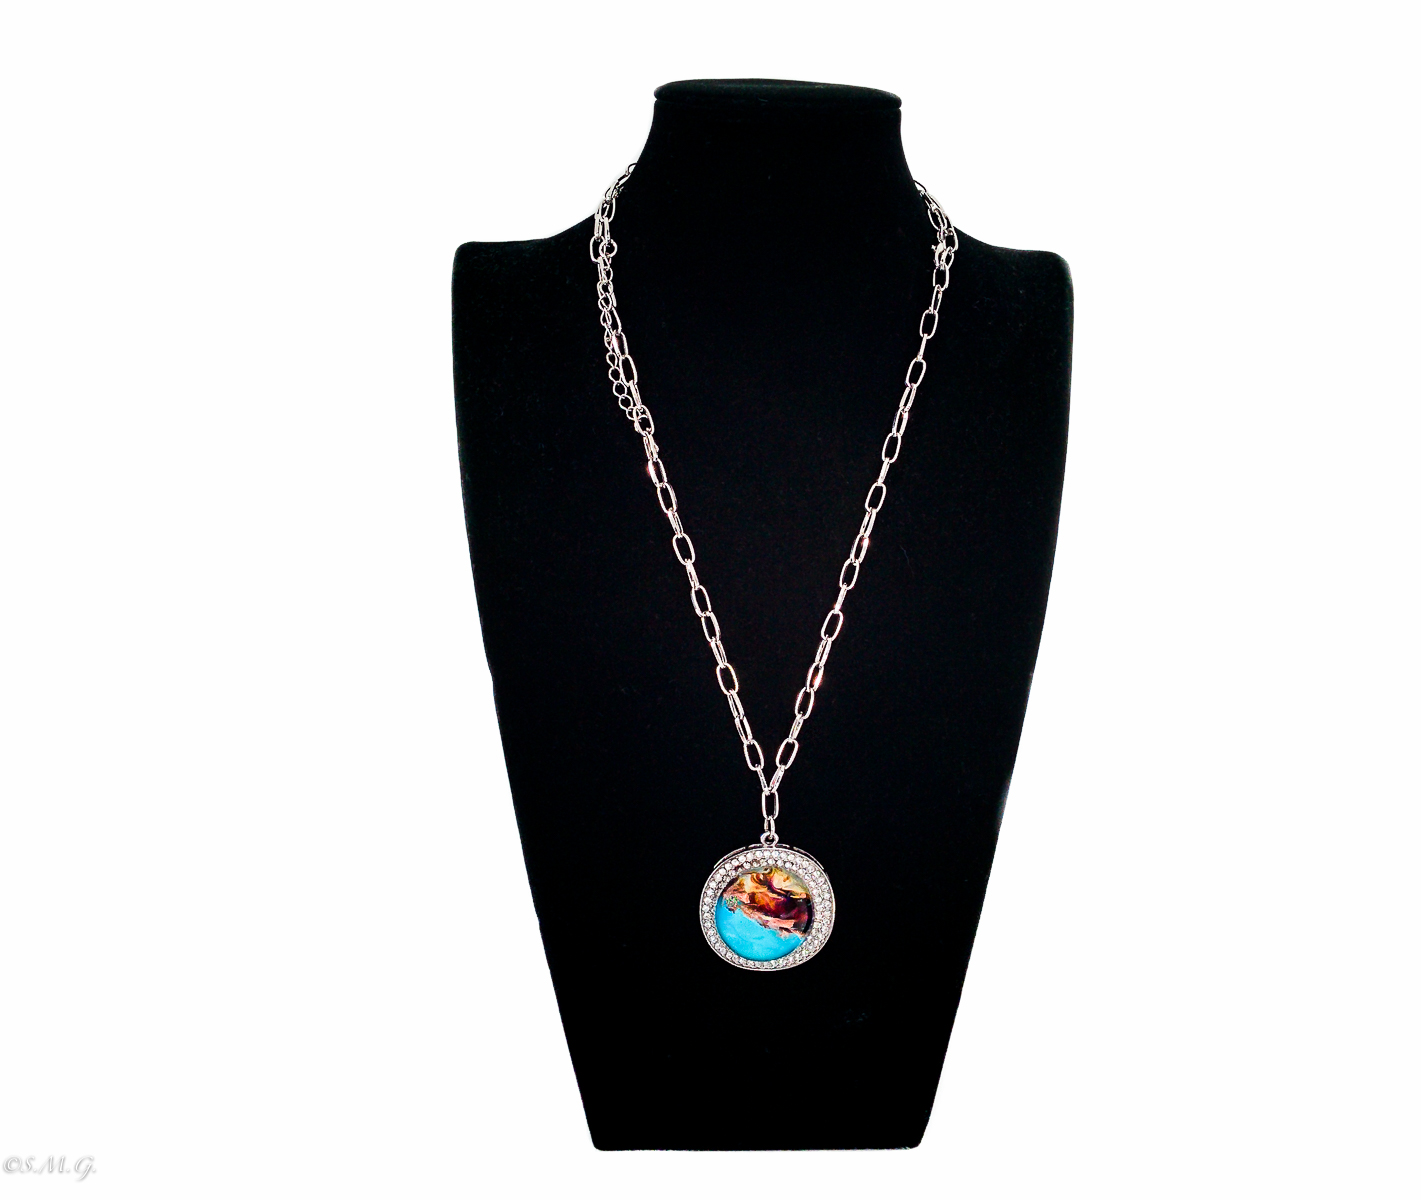 Murano glass round blue and black pendant with decorative crystal and chain